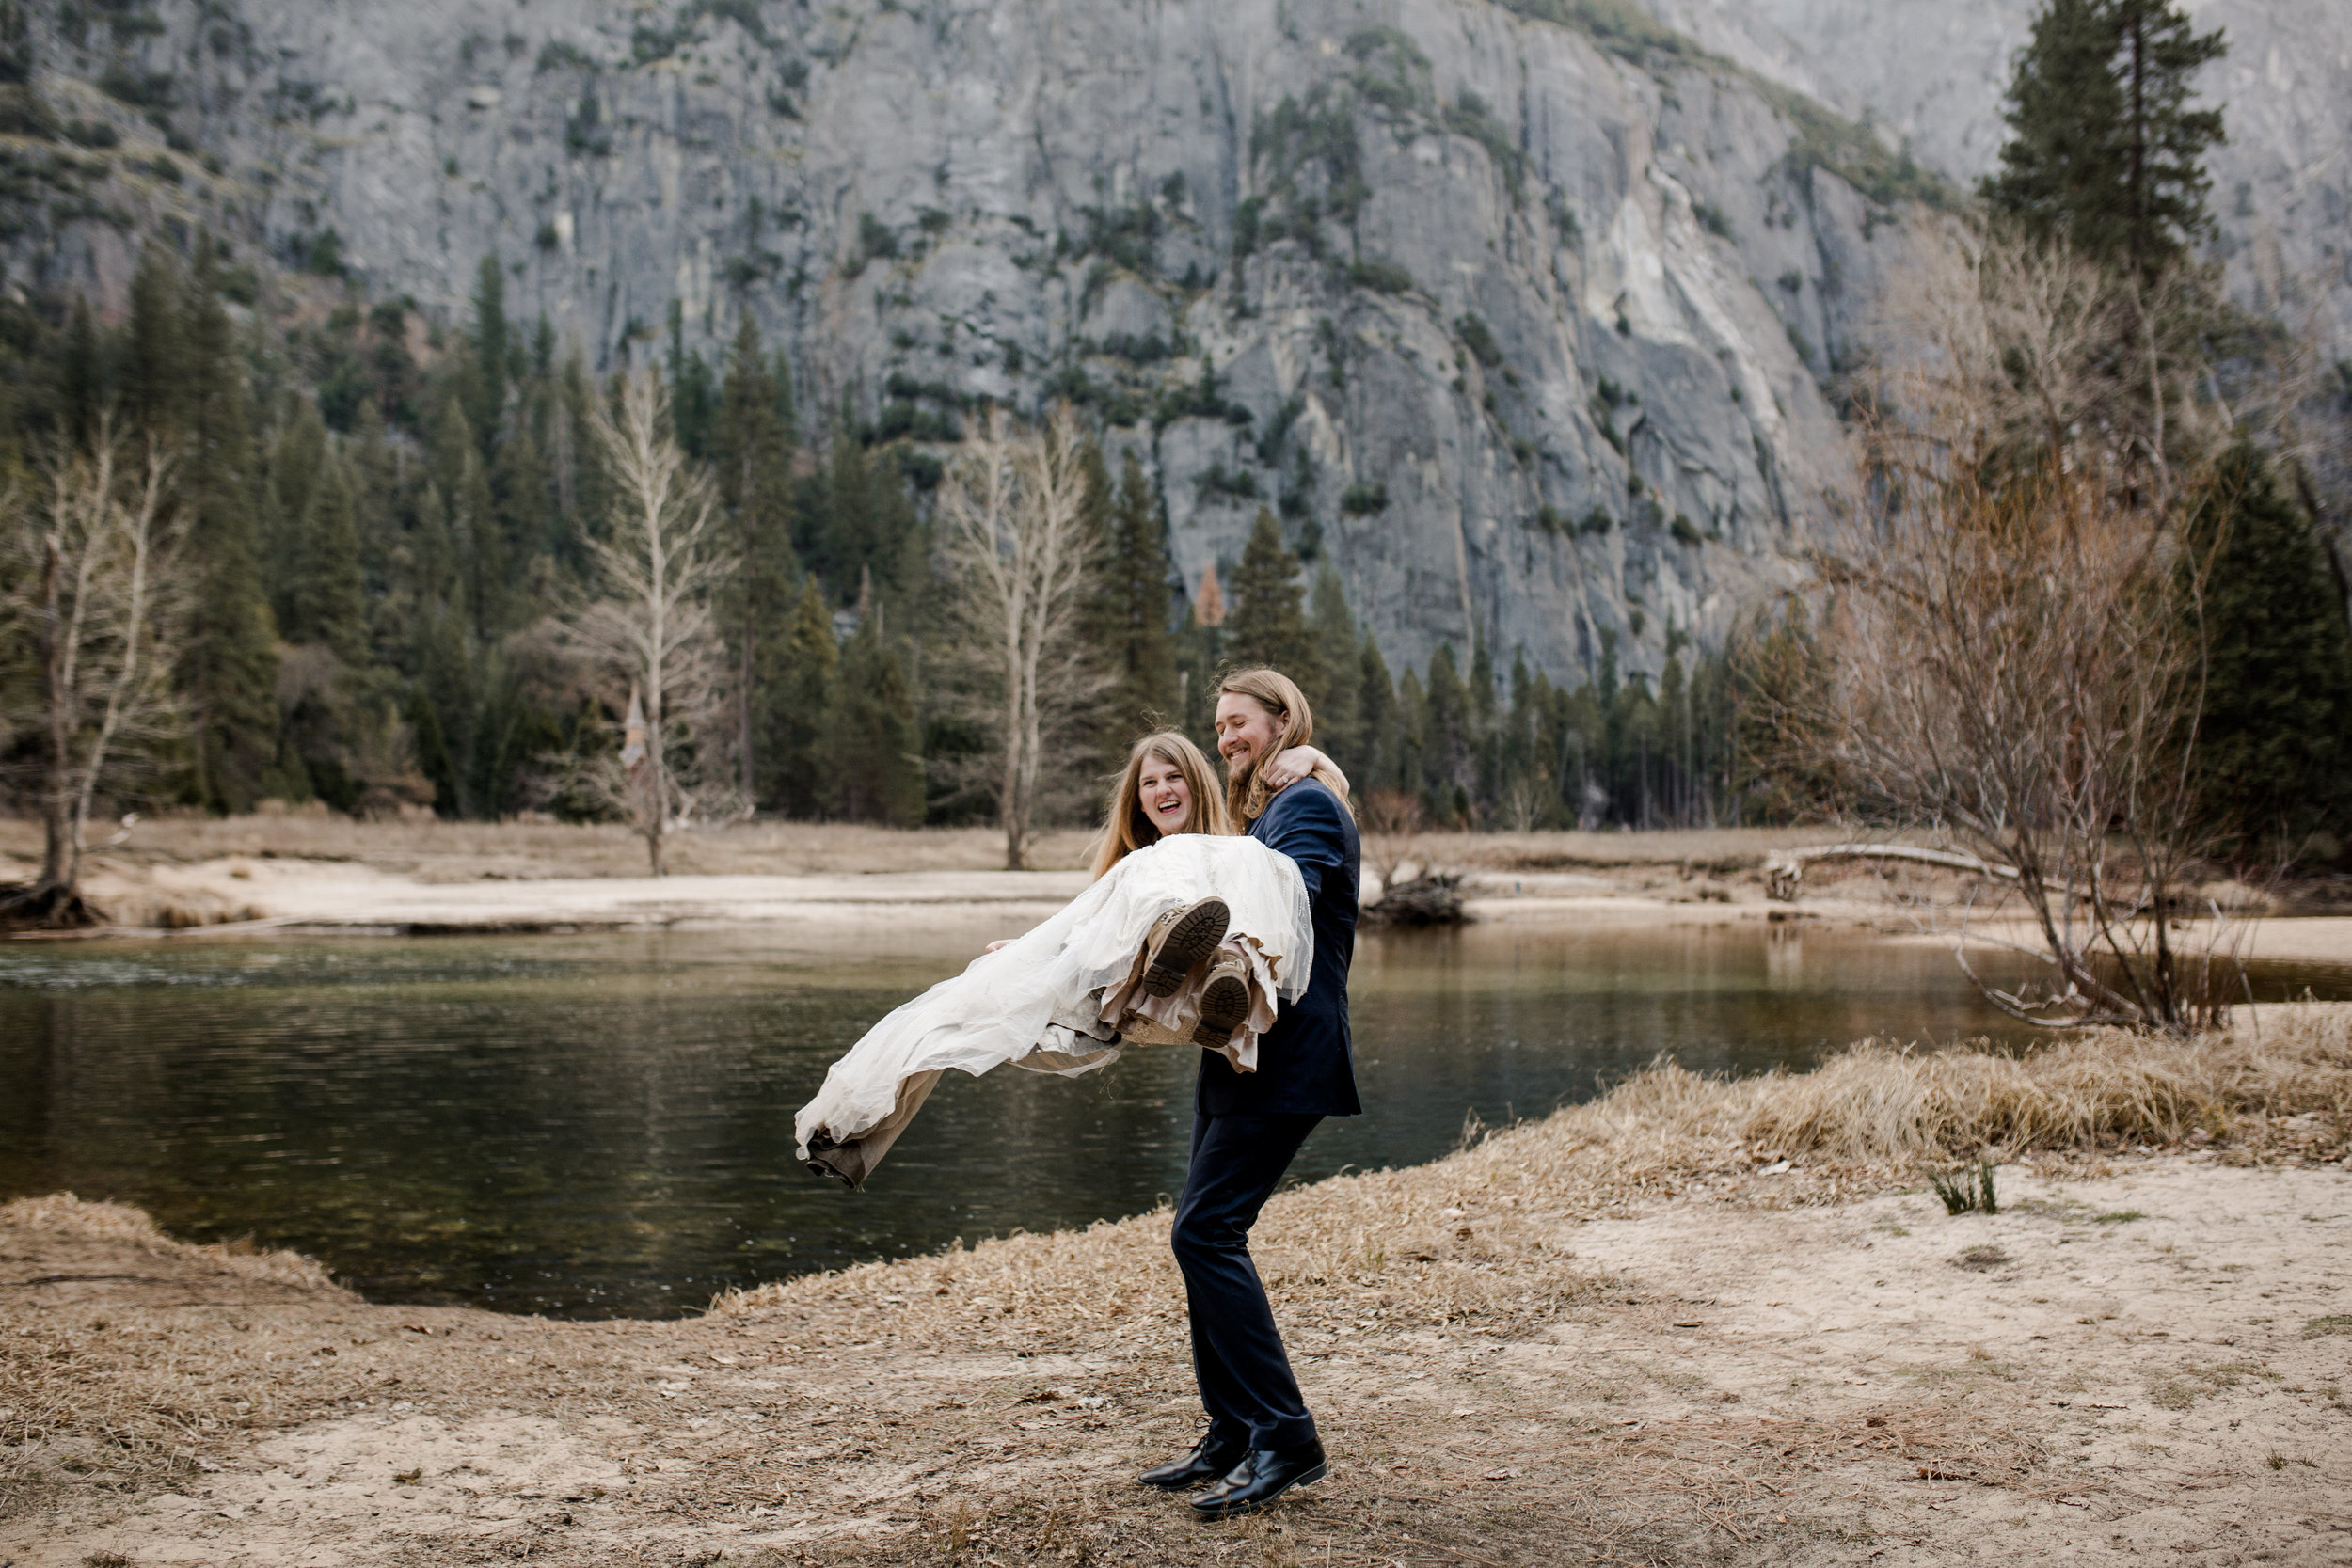 nicole-daacke-photography-yousemite-national-park-elopement-photographer-winter-cloud-moody-elope-inspiration-yosemite-valley-tunnel-view-winter-cloud-fog-weather-wedding-photos-39.jpg